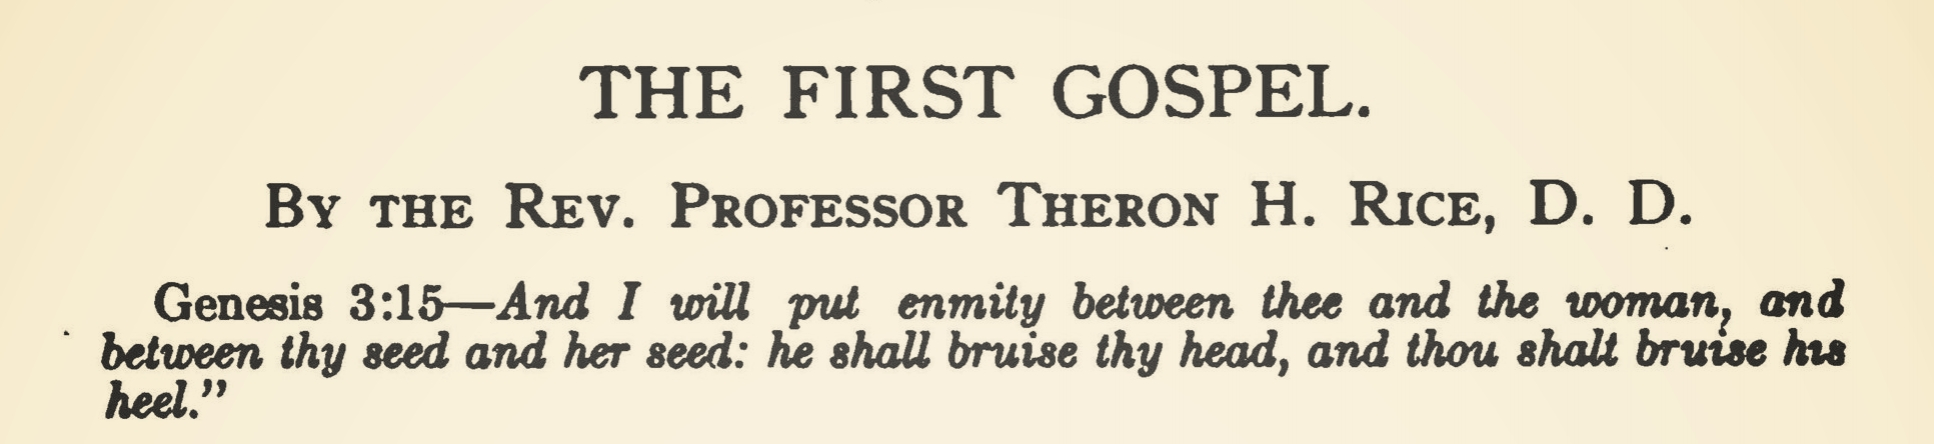 Rice, Jr., Theron Hall, The First Gospel Title Page.jpg